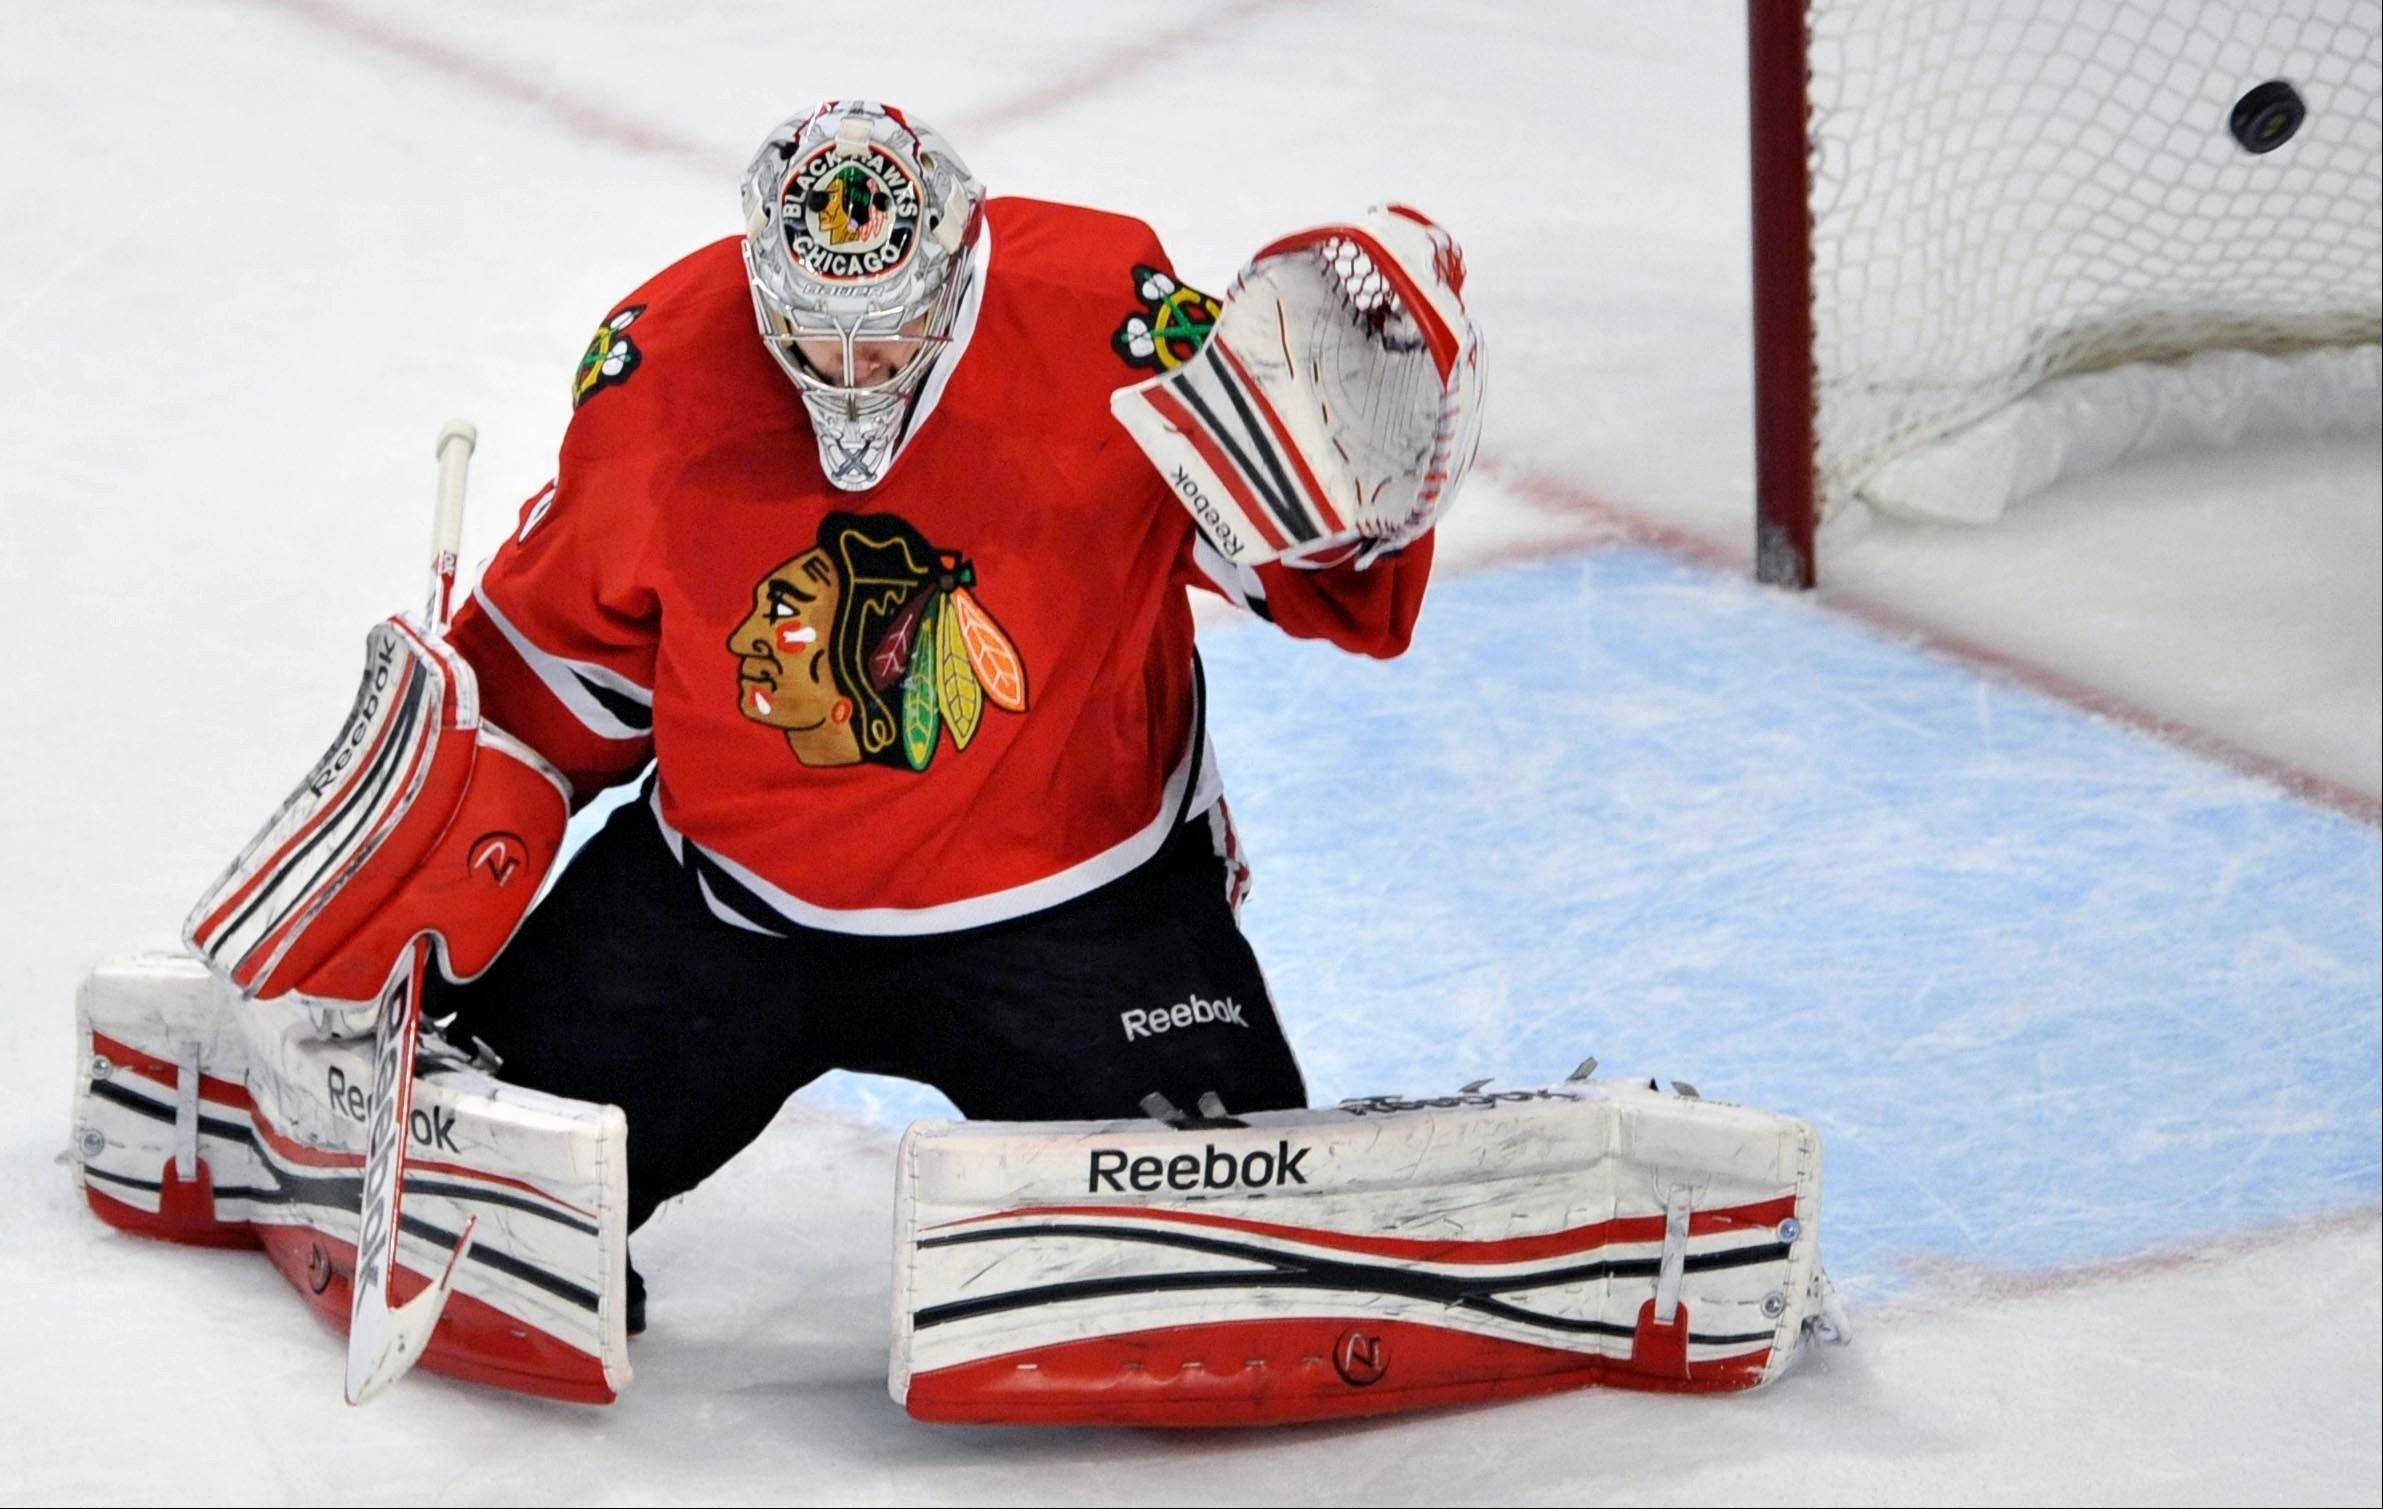 Chicago Blackhawks goalie Corey Crawford misses a goal scored by St. Louis Blues' Adam Cracknell during the first period of an NHL hockey game in Chicago, Thursday, April, 4, 2013. (AP Photo/Paul Beaty)